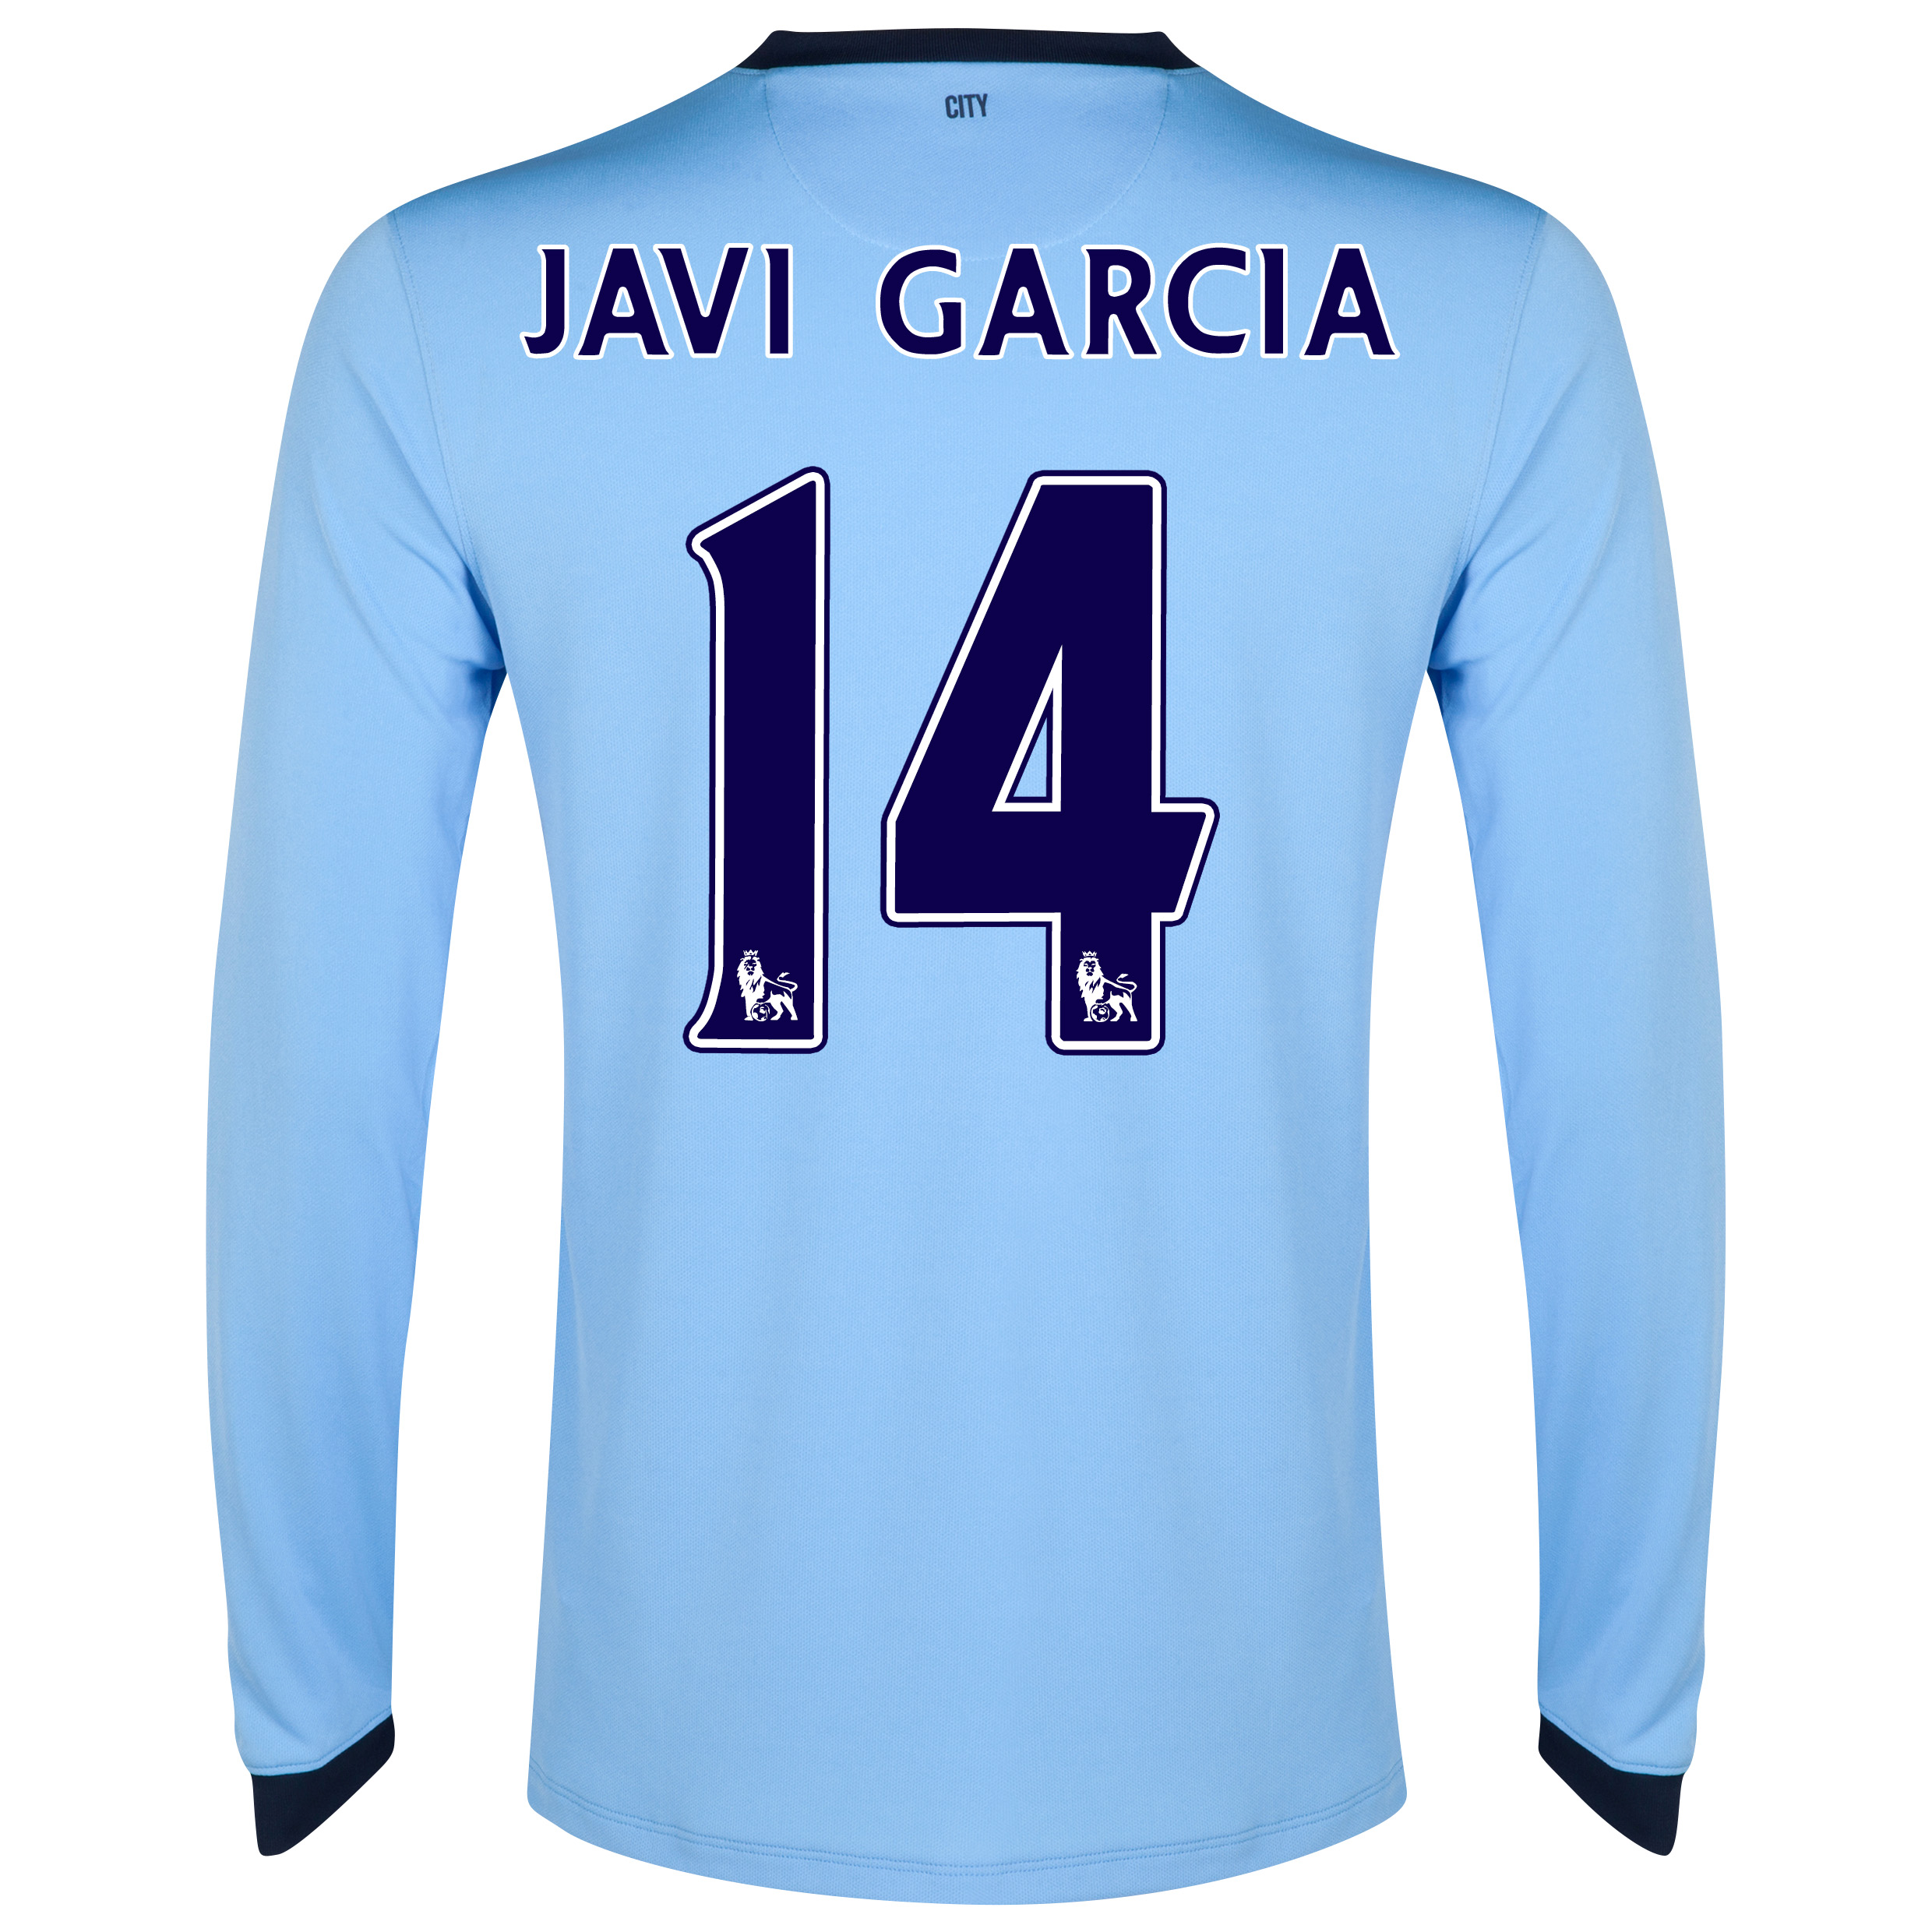 Manchester City Home Shirt 2014/15 - Long Sleeve Sky Blue with Javi Garcia 14 printing